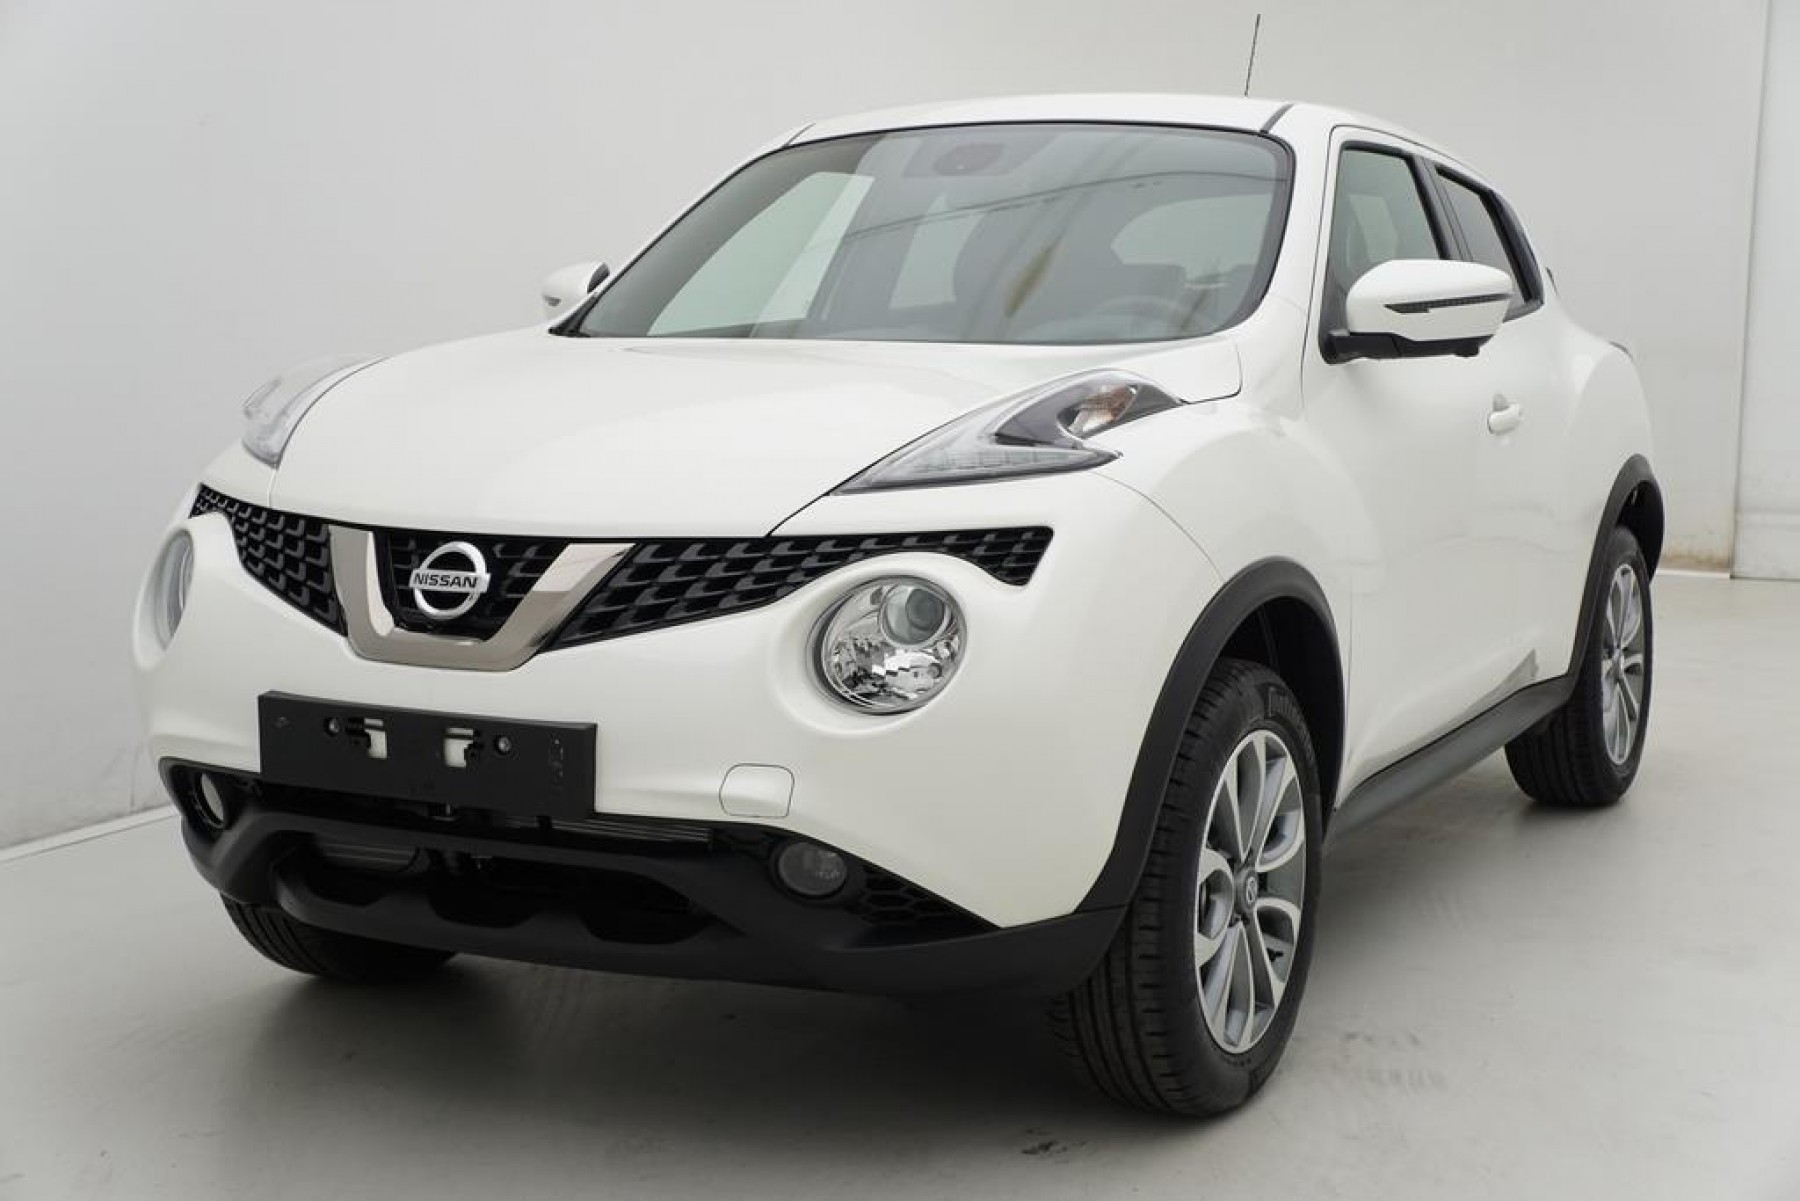 nissan juke automatique tekna cuir gps auto wise. Black Bedroom Furniture Sets. Home Design Ideas